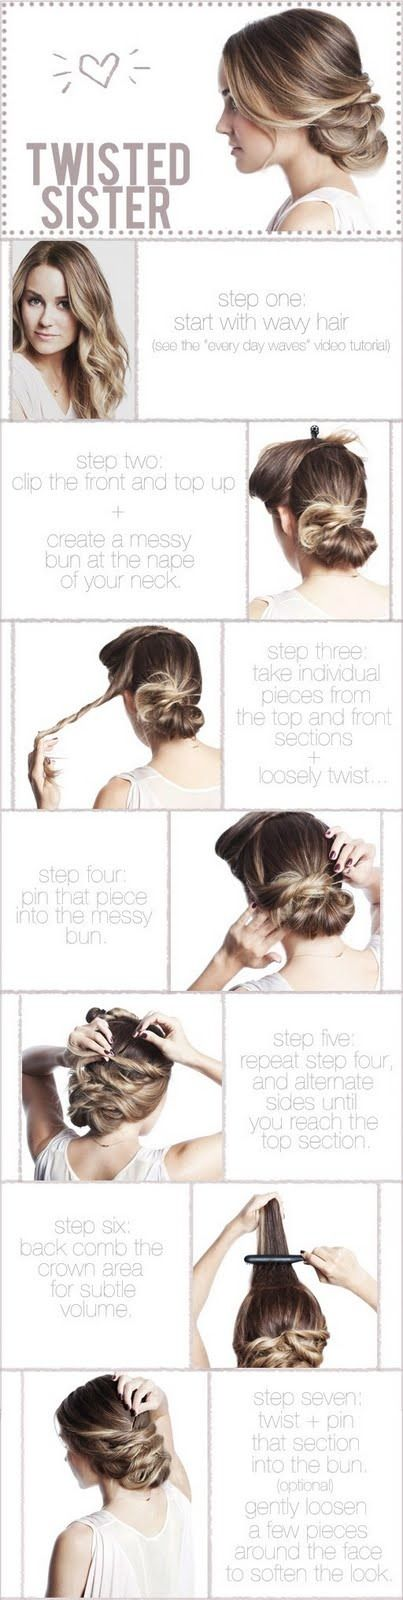 www.lunacatstudio.com beauty hair makeup blog template wordpress premium How To: 'Twisted Sister' Hairstyle. Please don't forget!